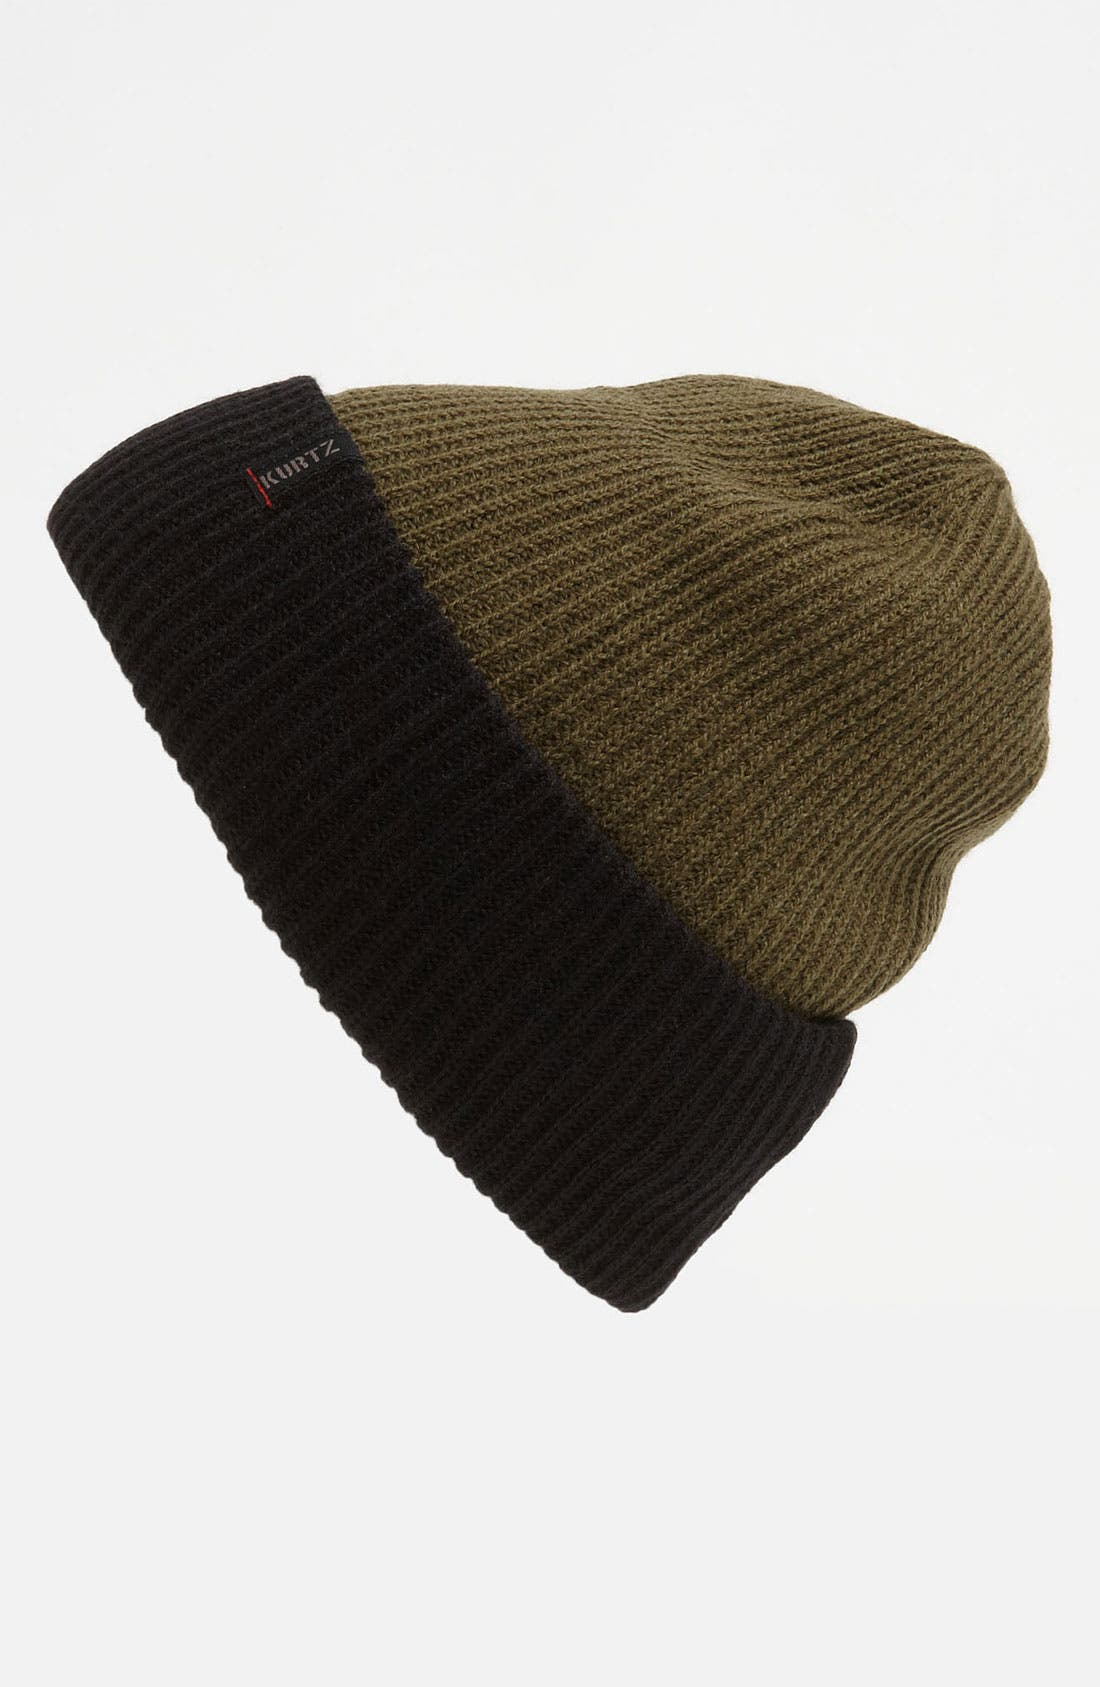 Main Image - A. Kurtz 'Wayne' 4-in-1 Reversible Wool Blend Beanie